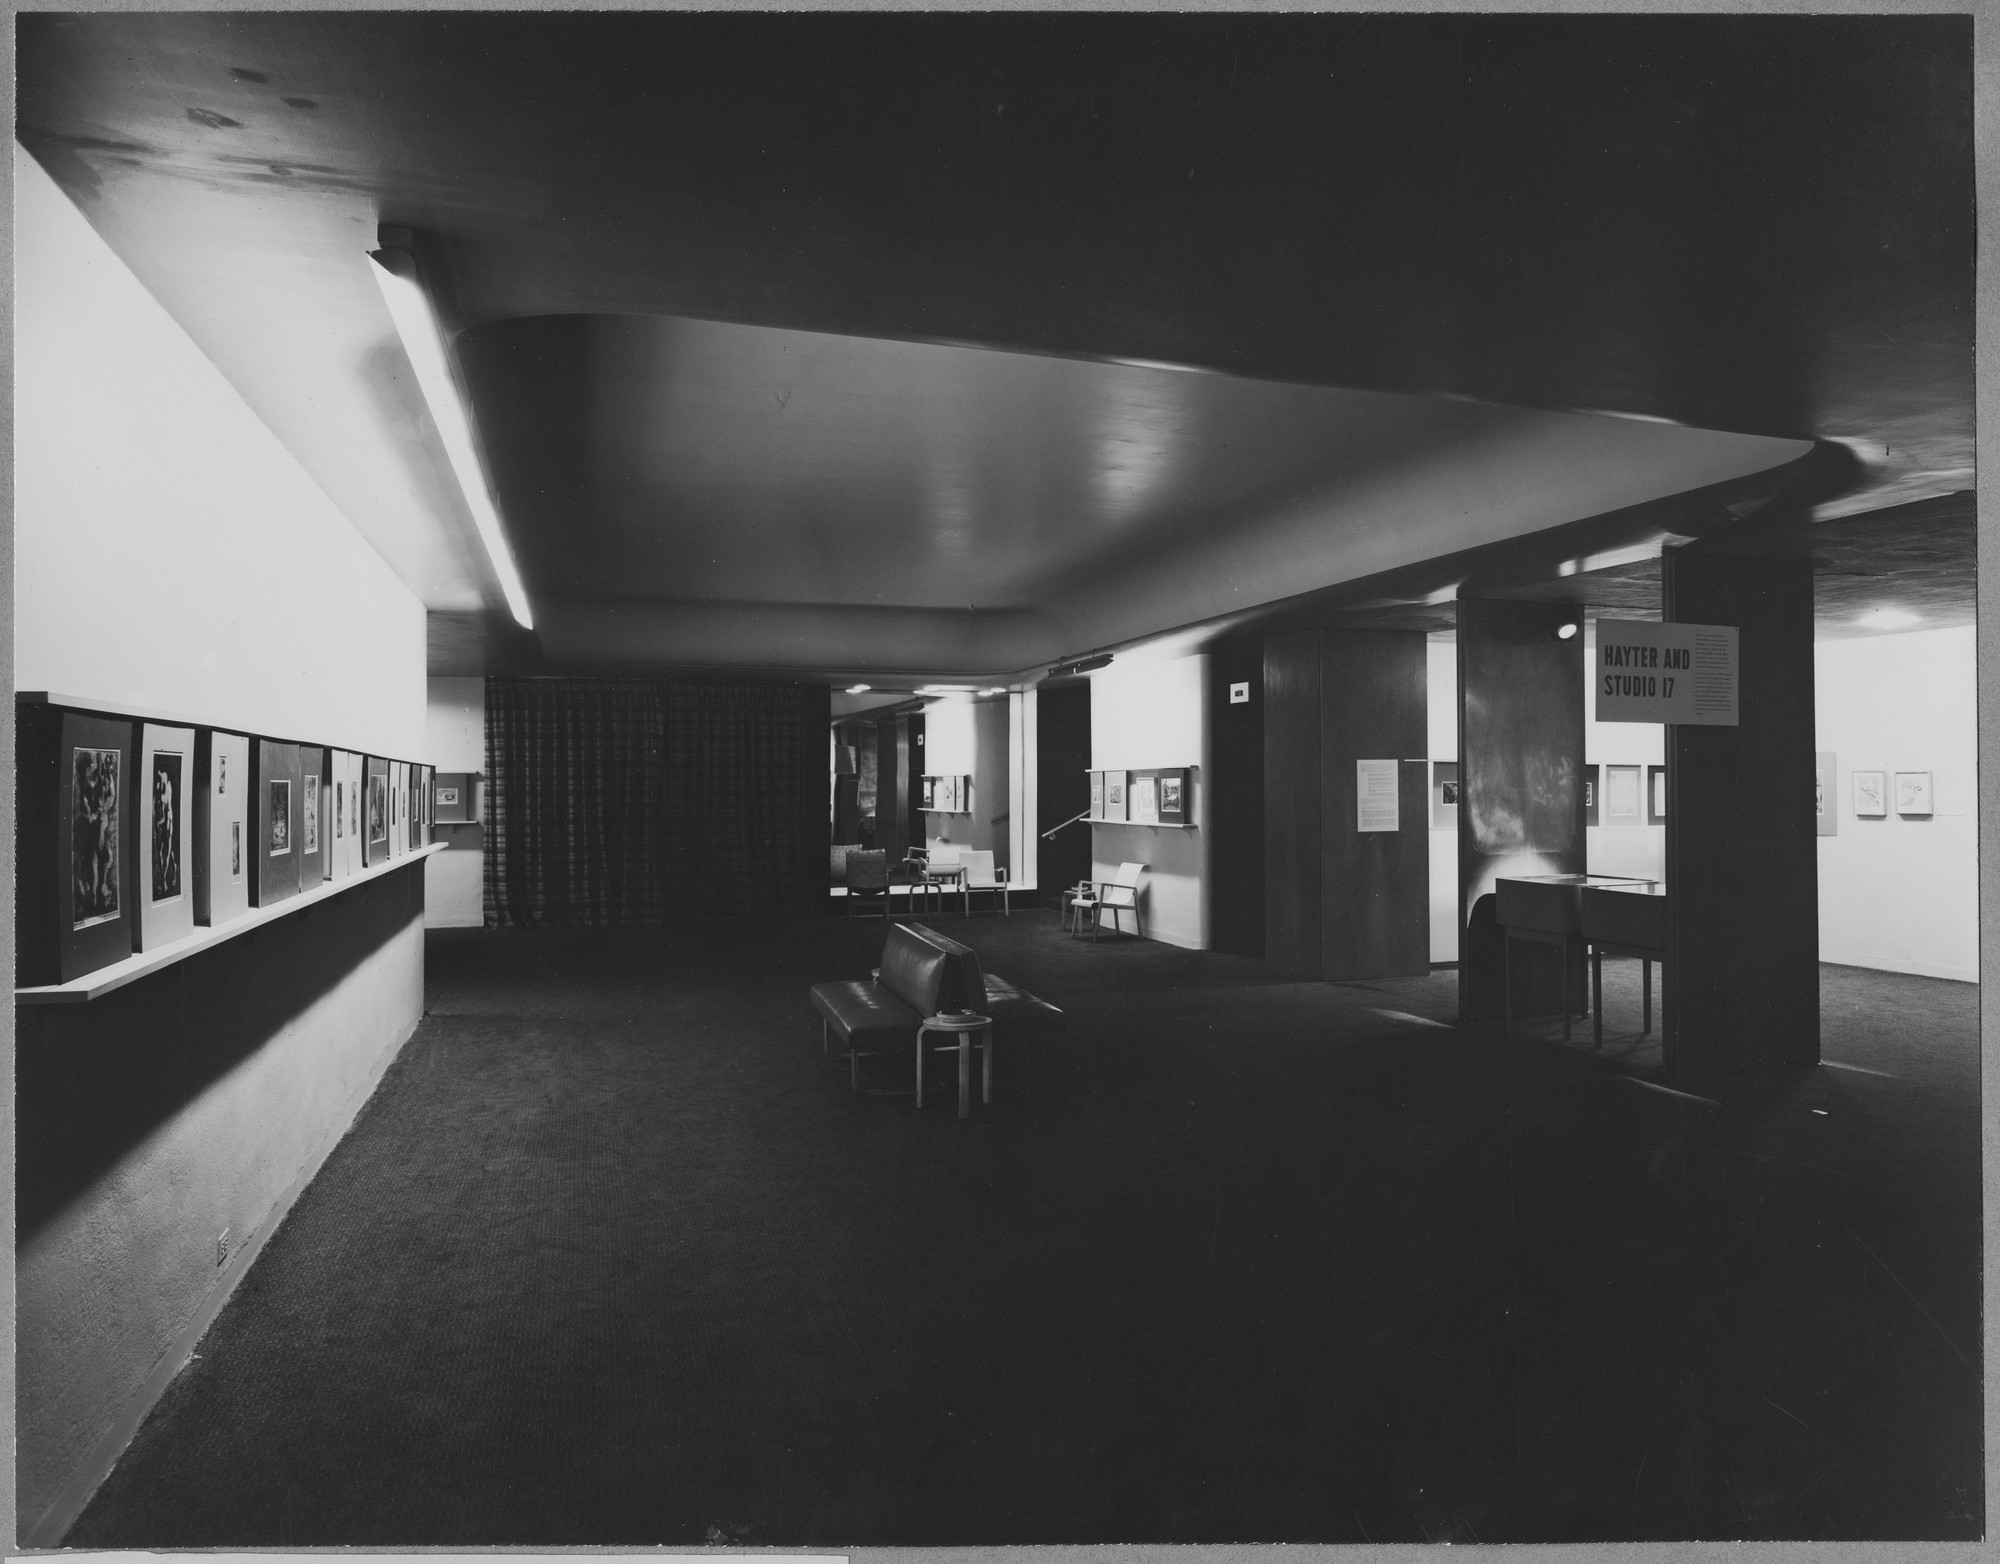 "Installation view of the exhibition,""Hayter and Studio 17:  New Directions in Gravure."" June 18, 1944–October 8, 1944. Photographic Archive. The Museum of Modern Art Archives, New York. IN259.1. Photograph by Soichi Sunami."